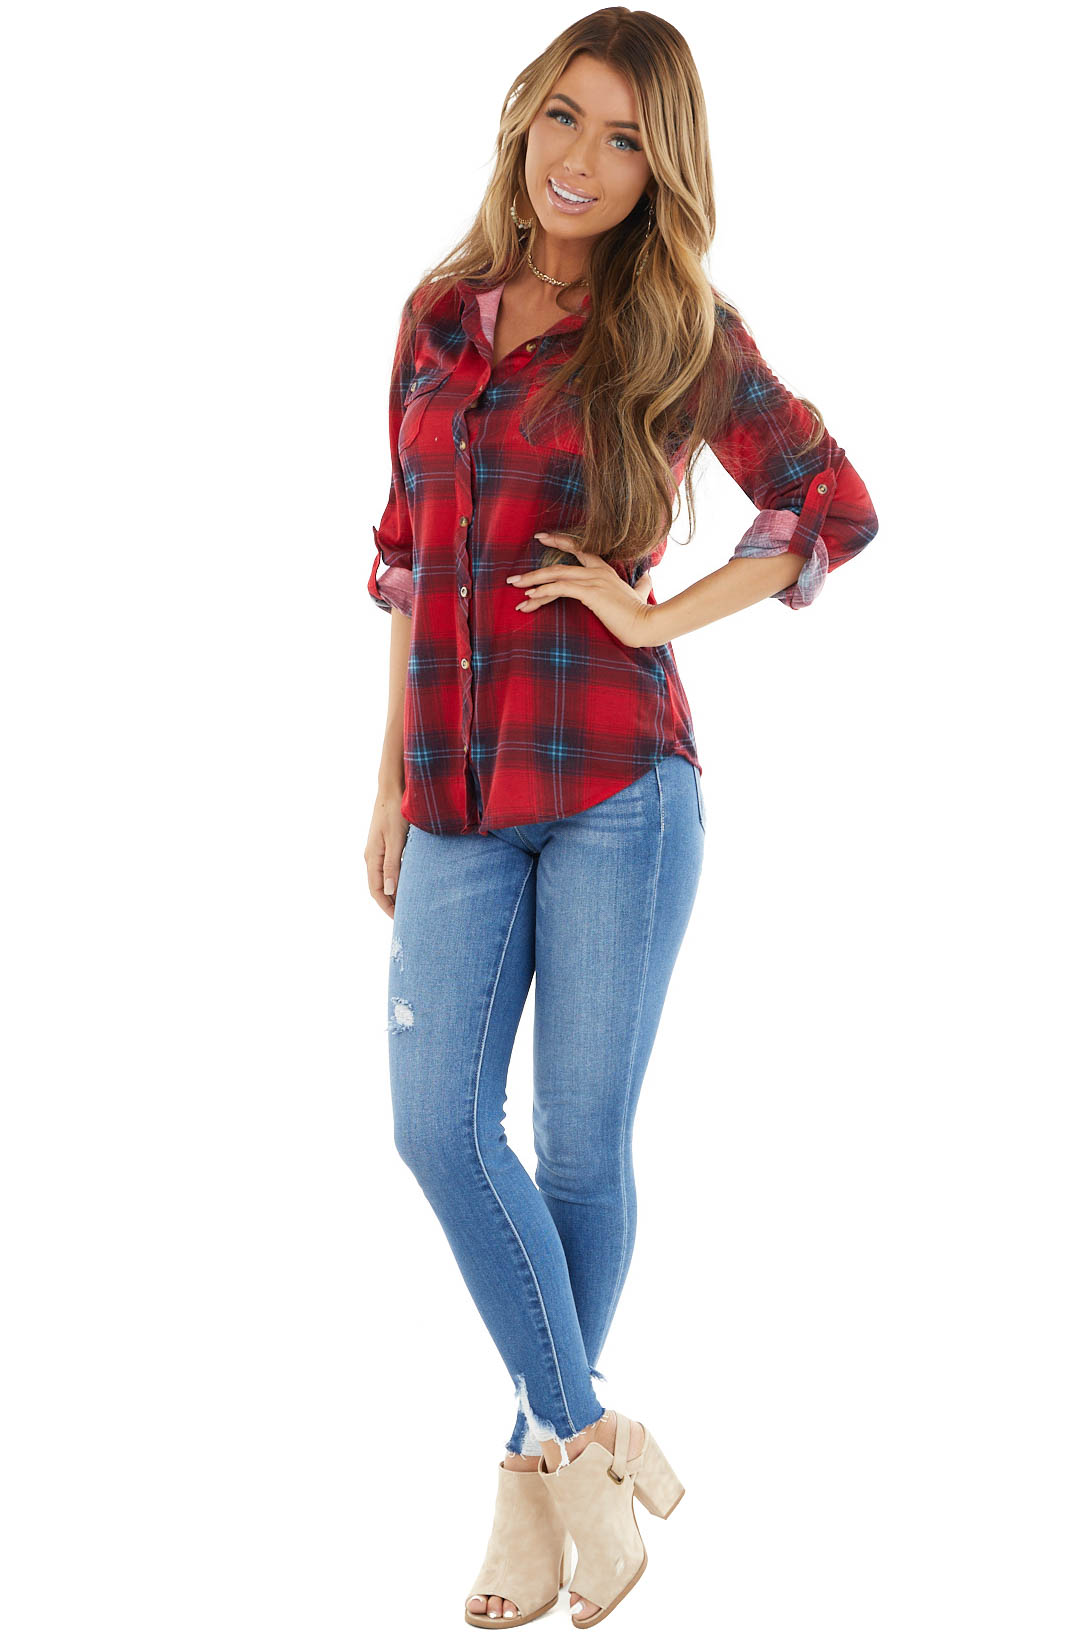 Crimson and Blue Plaid Button Closure Top with Chest Pockets